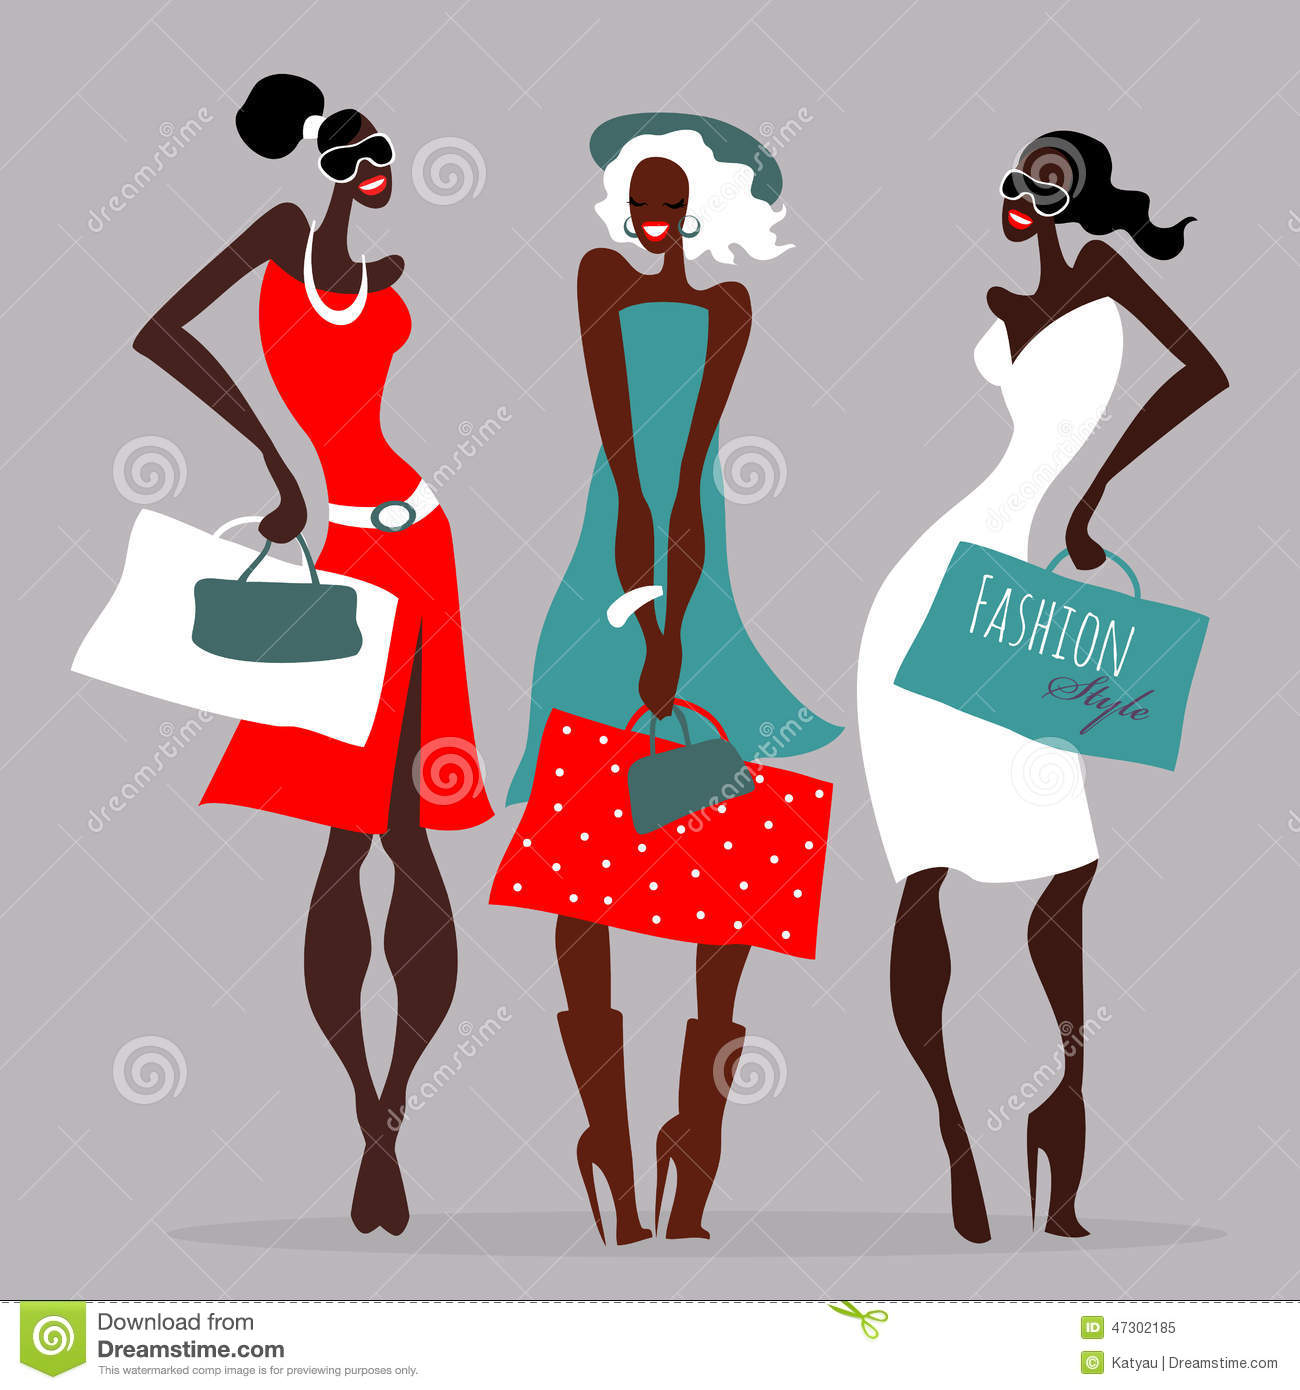 910b46cd9a Fashion Girls. Women With Shopping Bags. Stock Vector - Illustration ...